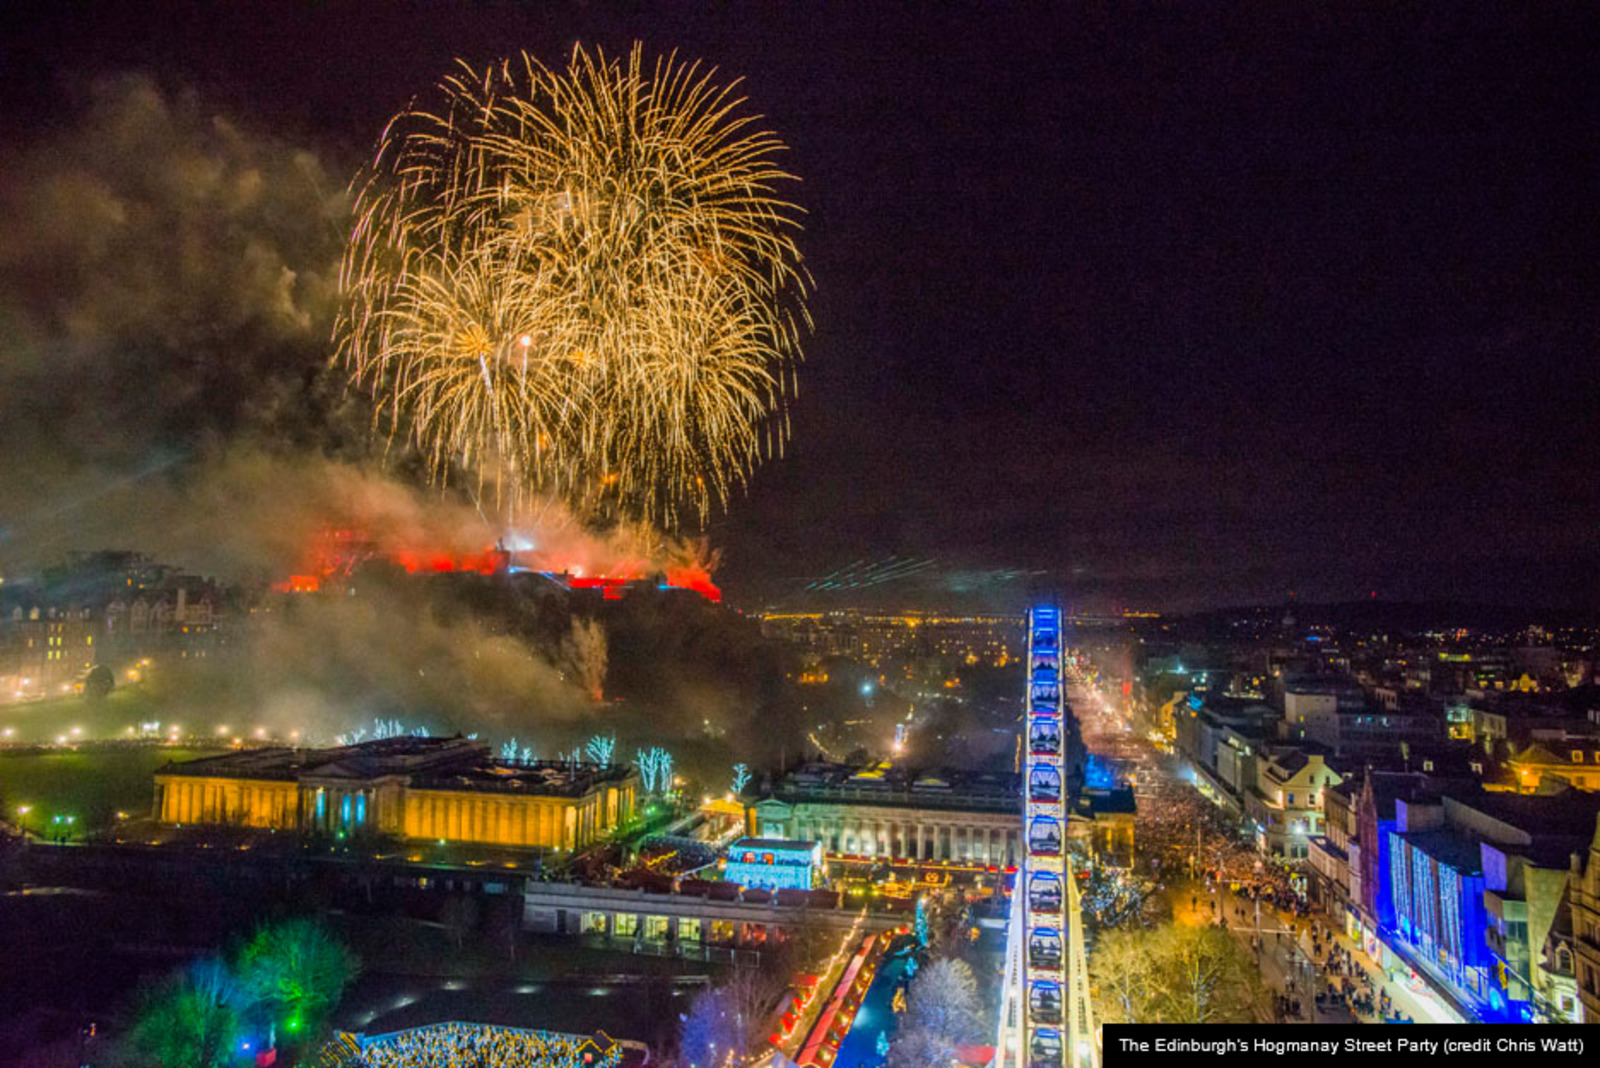 Edinburgh's Hogmanay - Edinburgh Festival City